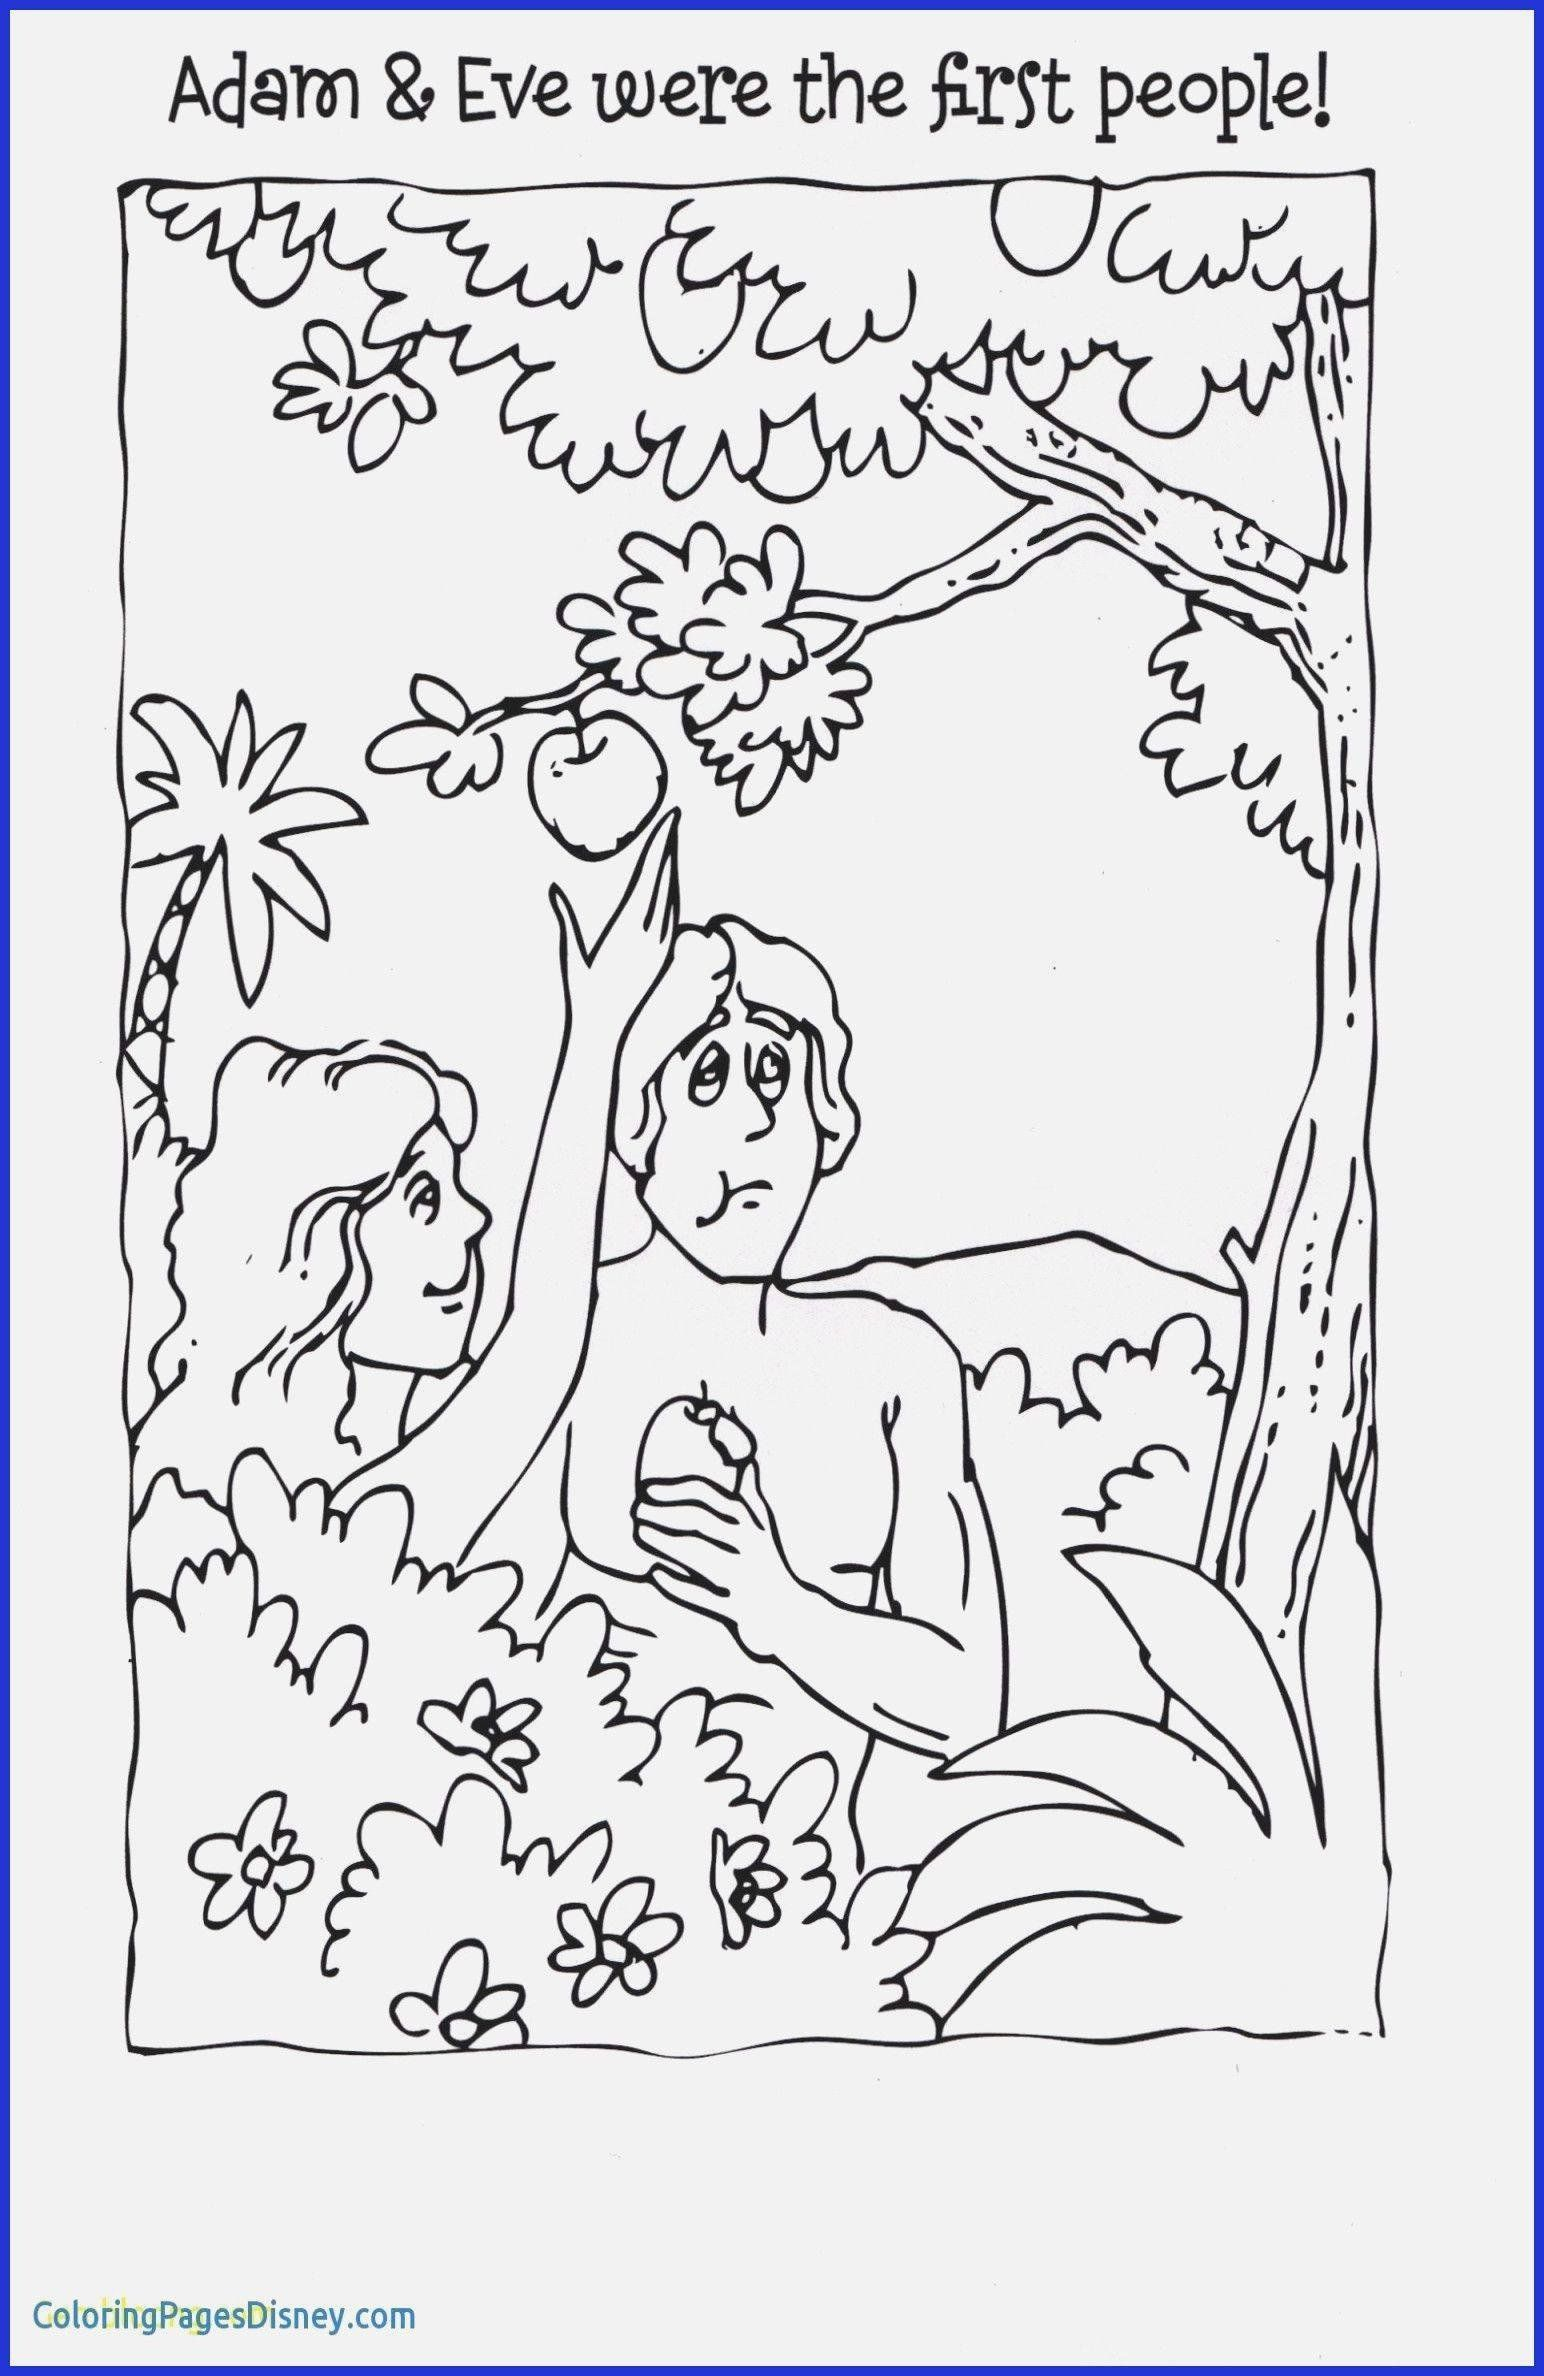 Adam And Eve Coloring Page Fresh Adam And Eve Coloring Page Adam And Eve Coloring Pages Coloring Pages For Kids